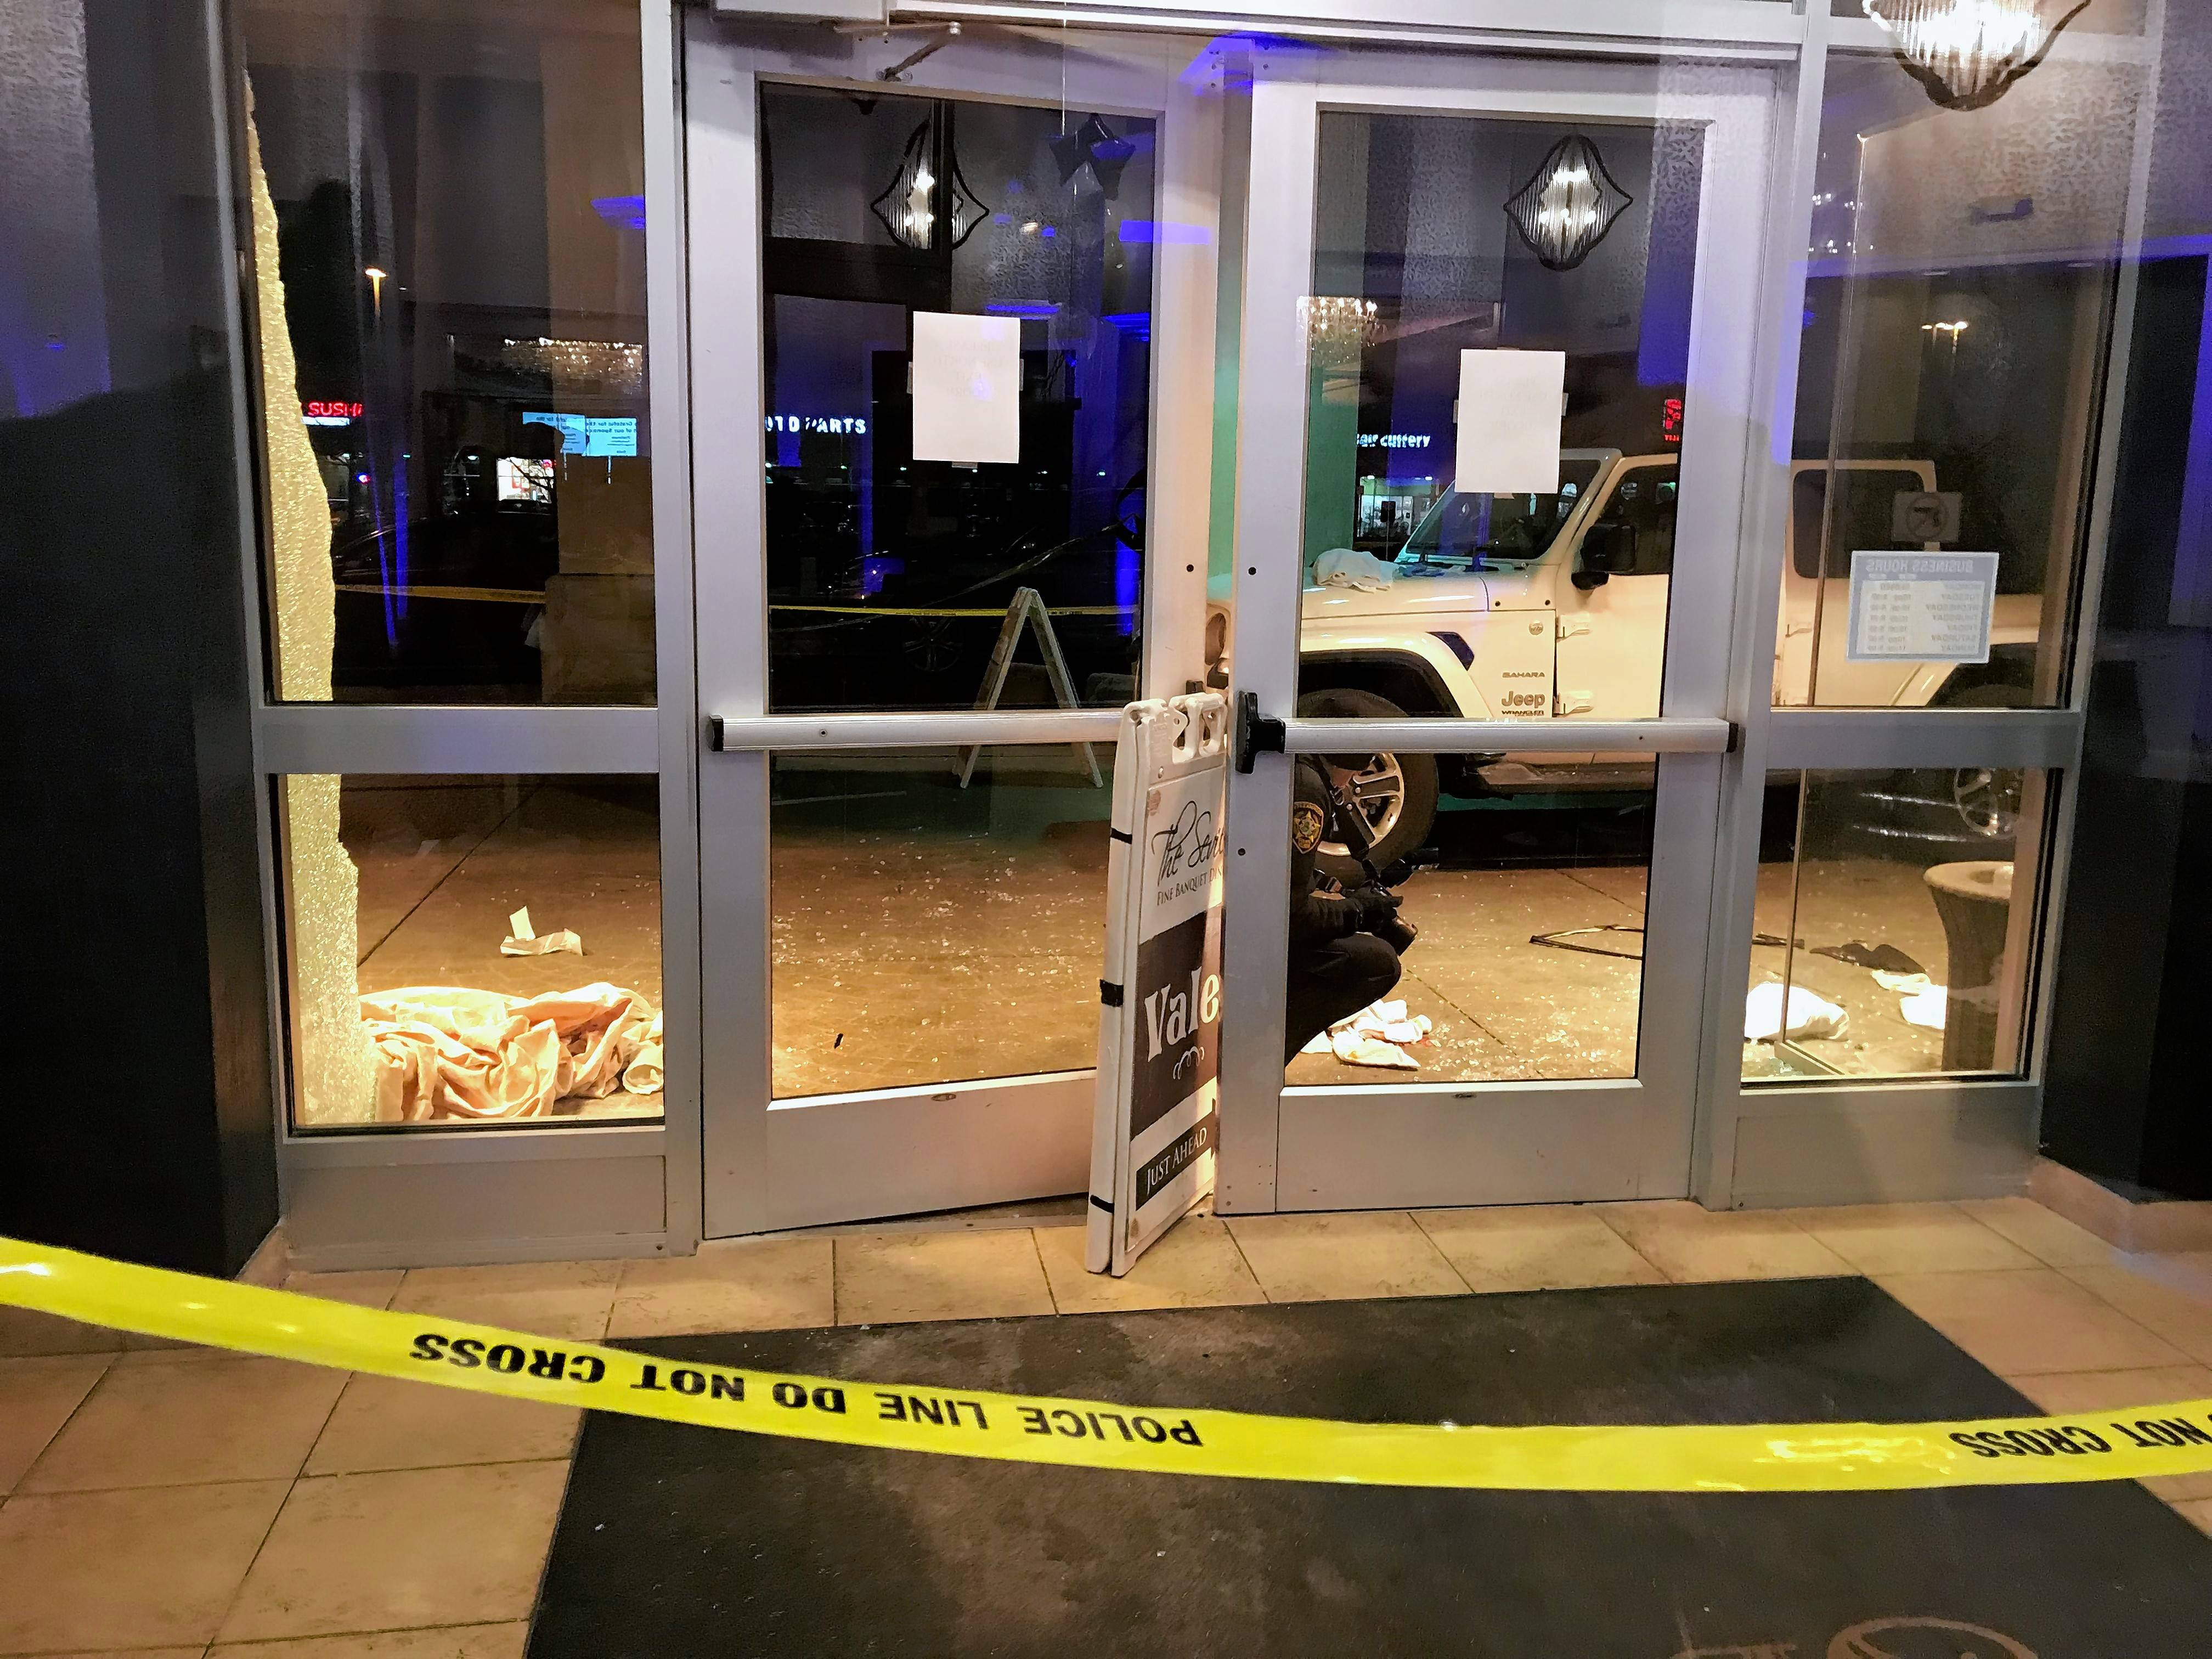 Police said Sunday that no charges are filed against the driver of a vehicle that crashed into The Seville banquet hall Friday night in Streamwood.